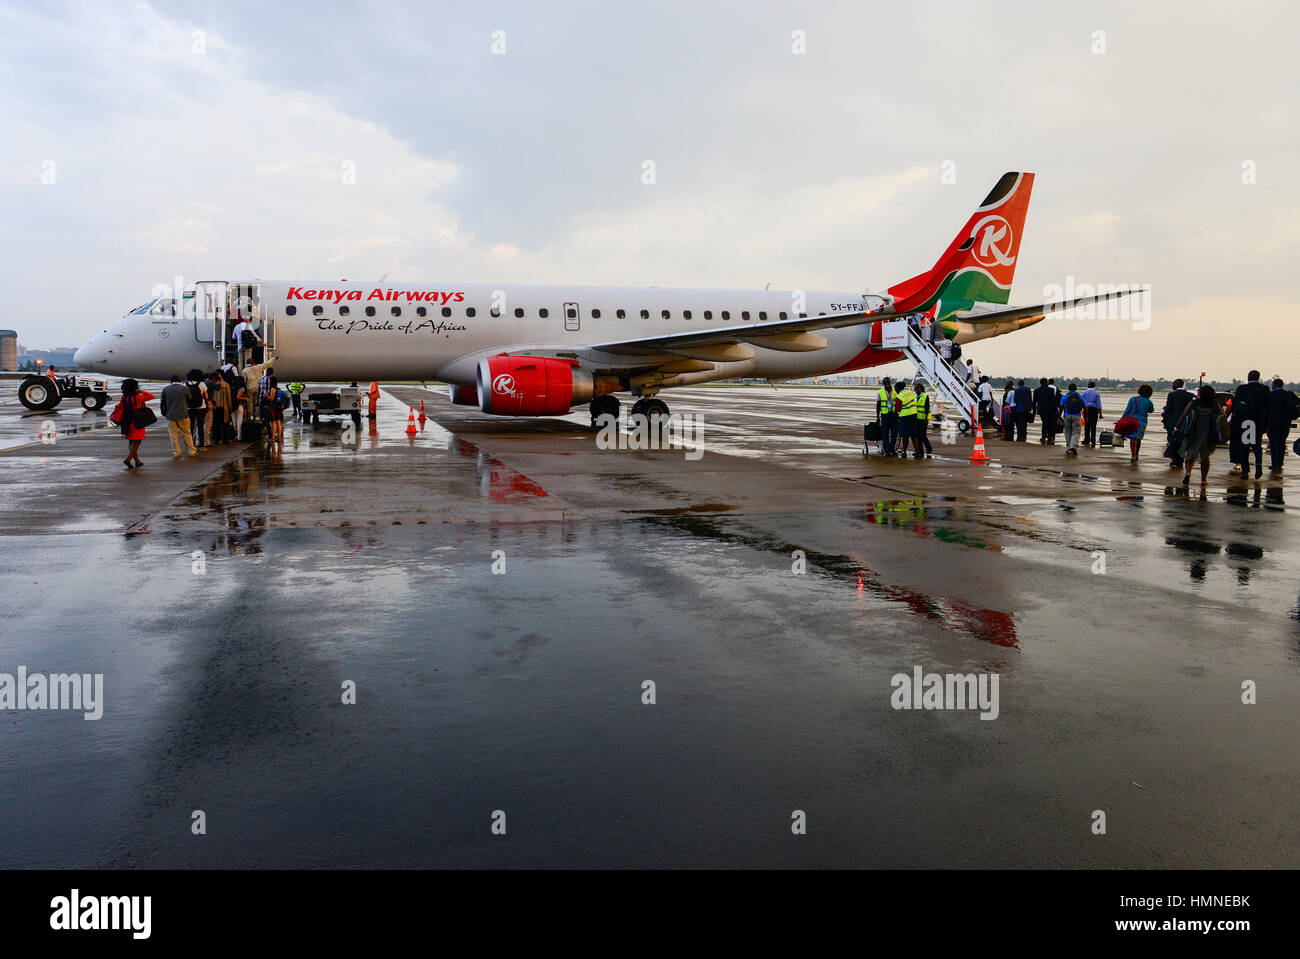 KENYA, Nairobi, JKIA Jomo Kenyatta International airport, passenger board a Kenya Airways aircraft Embraer 190 after - Stock Image